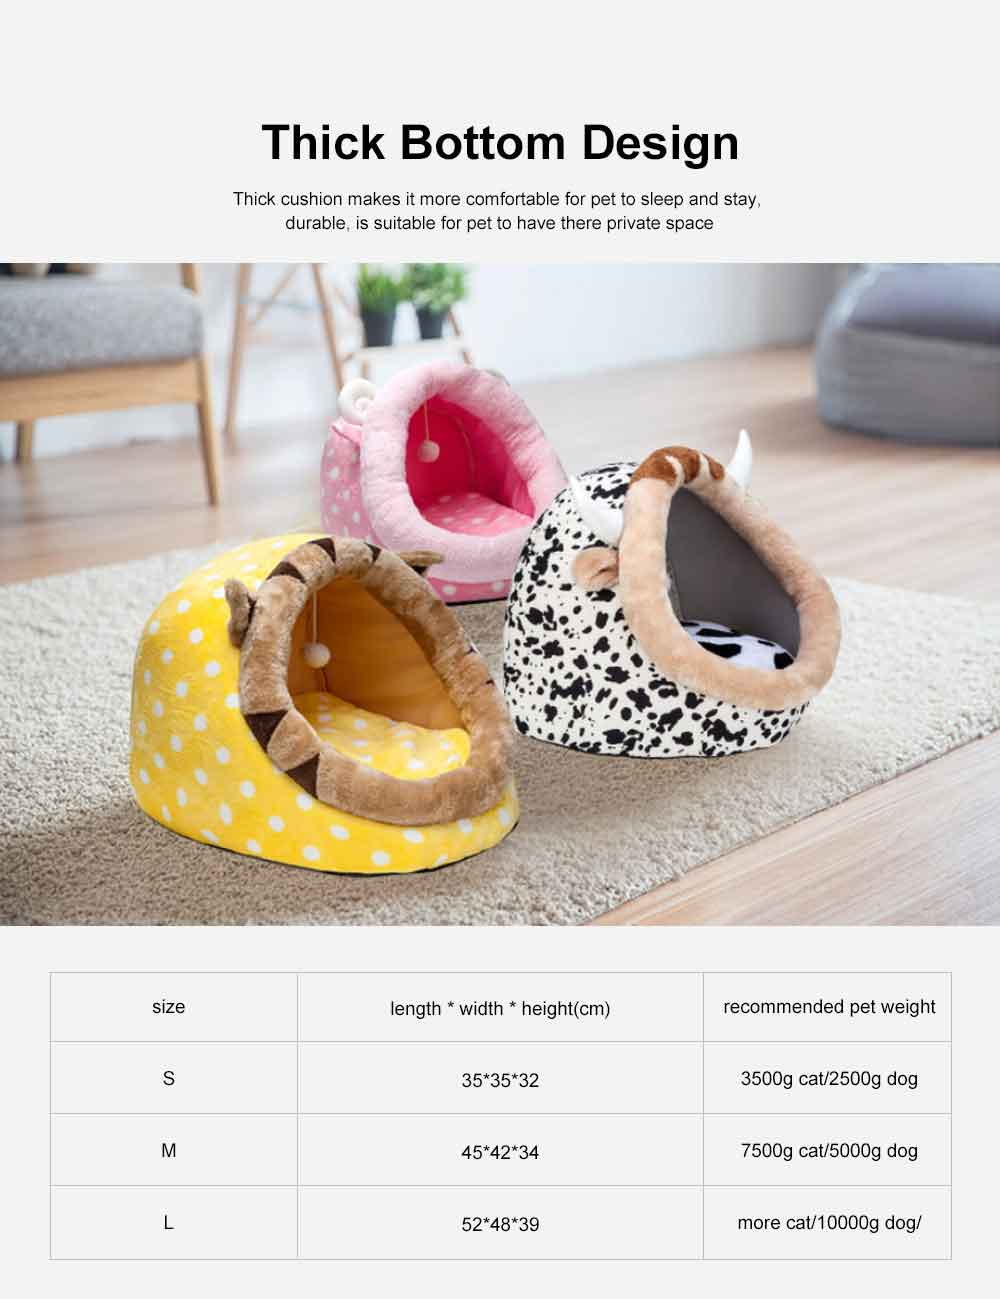 Animal Shape Luxury Pet Bed Dog Cat Nest, Supply Puppy Soft Sleep, Cat Nest Bed Keep Warm 5